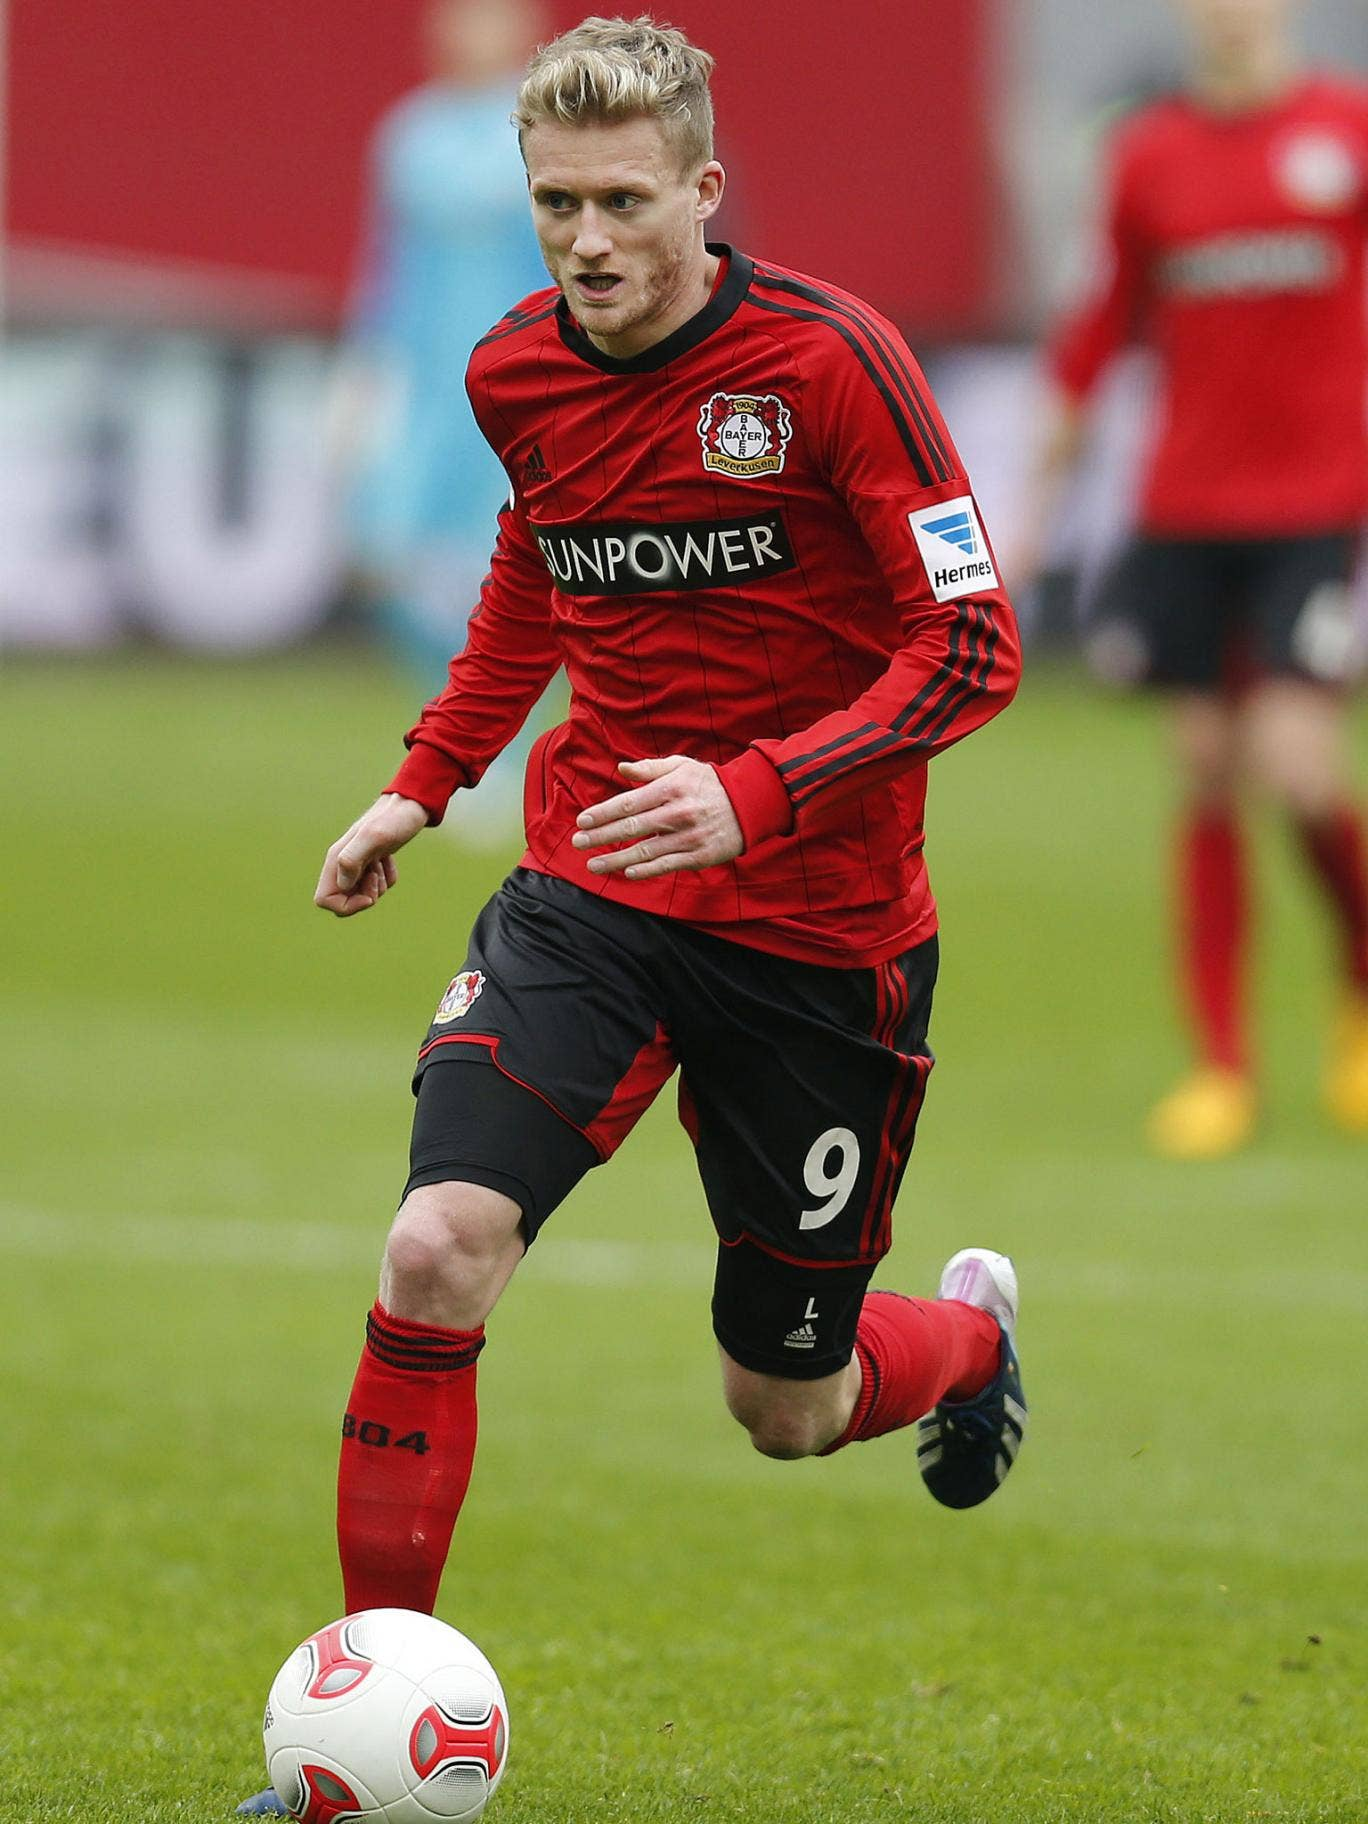 Chelsea have agreed a fee of £19m for Leverkusen's André Schürrle